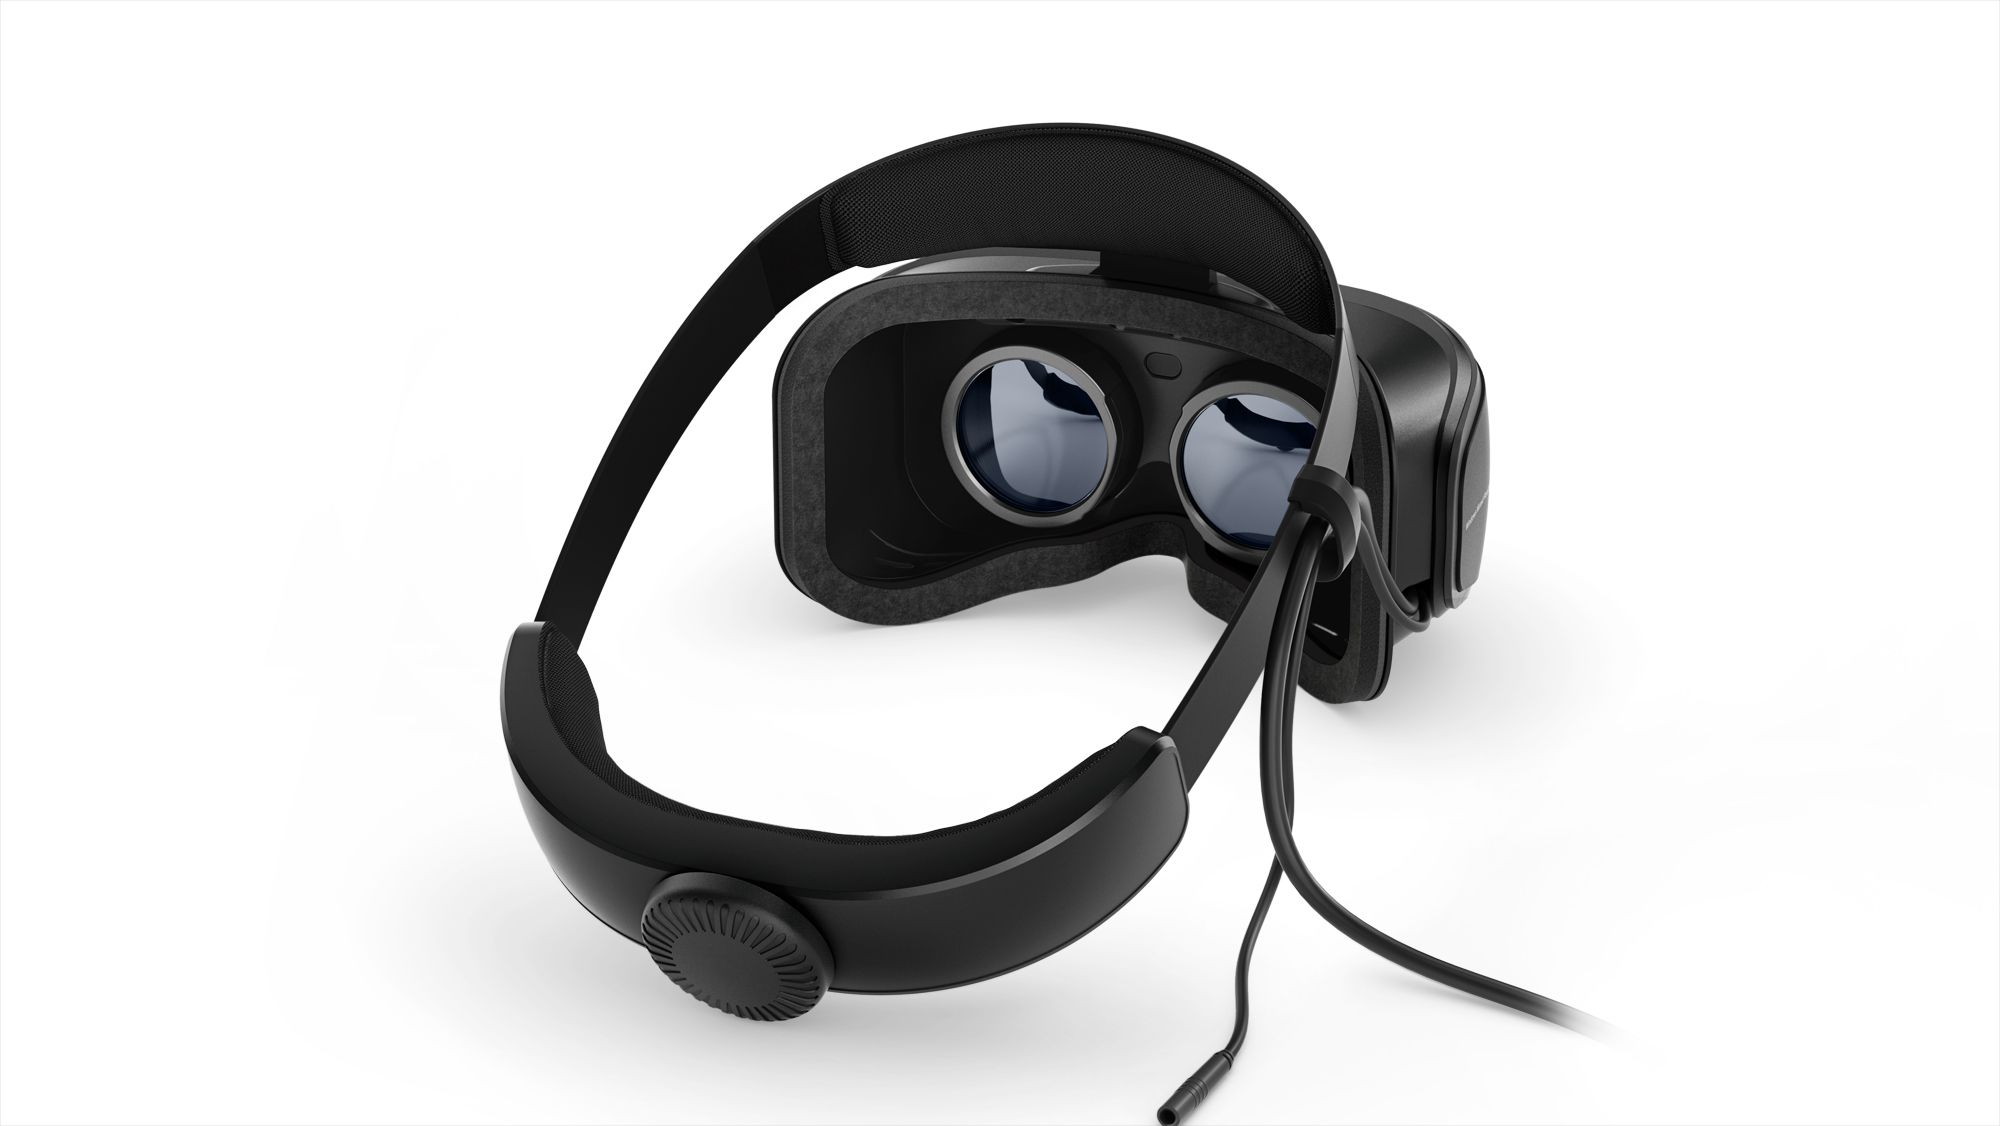 Windows 10 Update to Include Virtual Reality Features